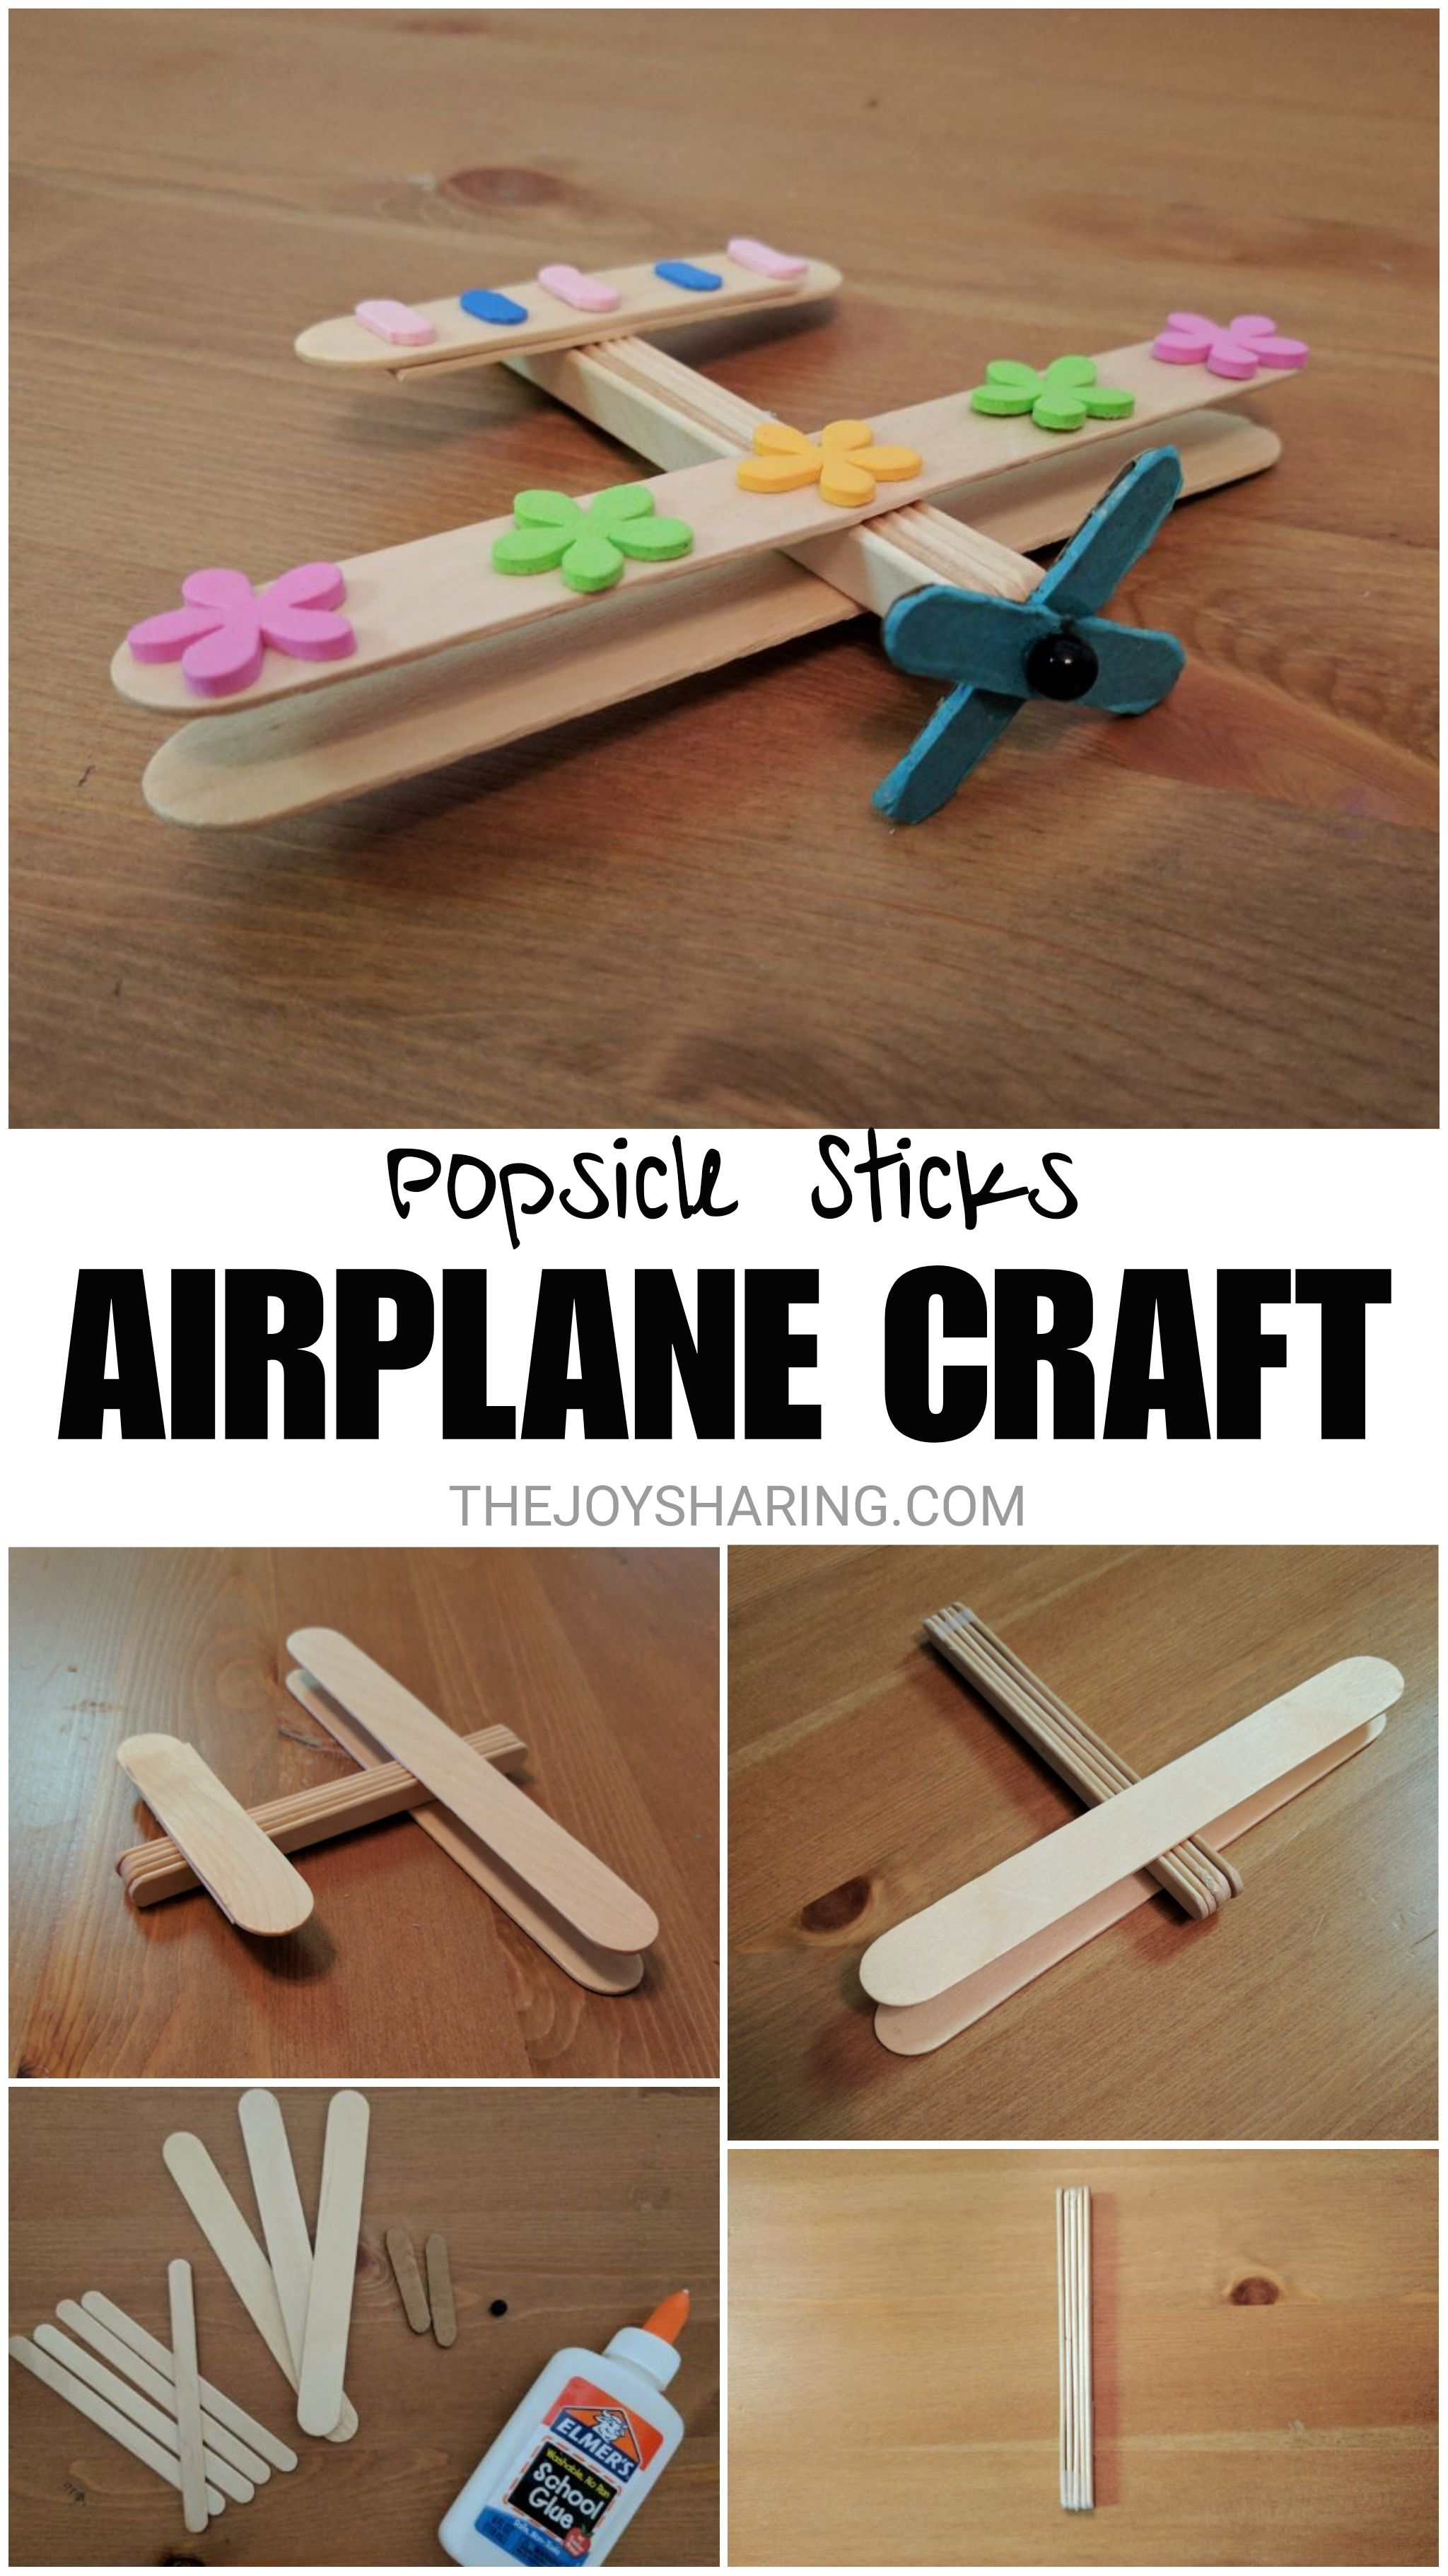 Easy airplane craft for preschool and kindergarten kids. Fun stem project to do at school. #thejoyofsharing #kidscrafts #craftsforkids #stem #steam #engineering #preschool #kindergarten #teachersfollowteachers #aeroplane #easydiy #easycrafts #montessori #firstgrade #homeschool #kidsactivities #preschoolteacher #kindergartenteacher